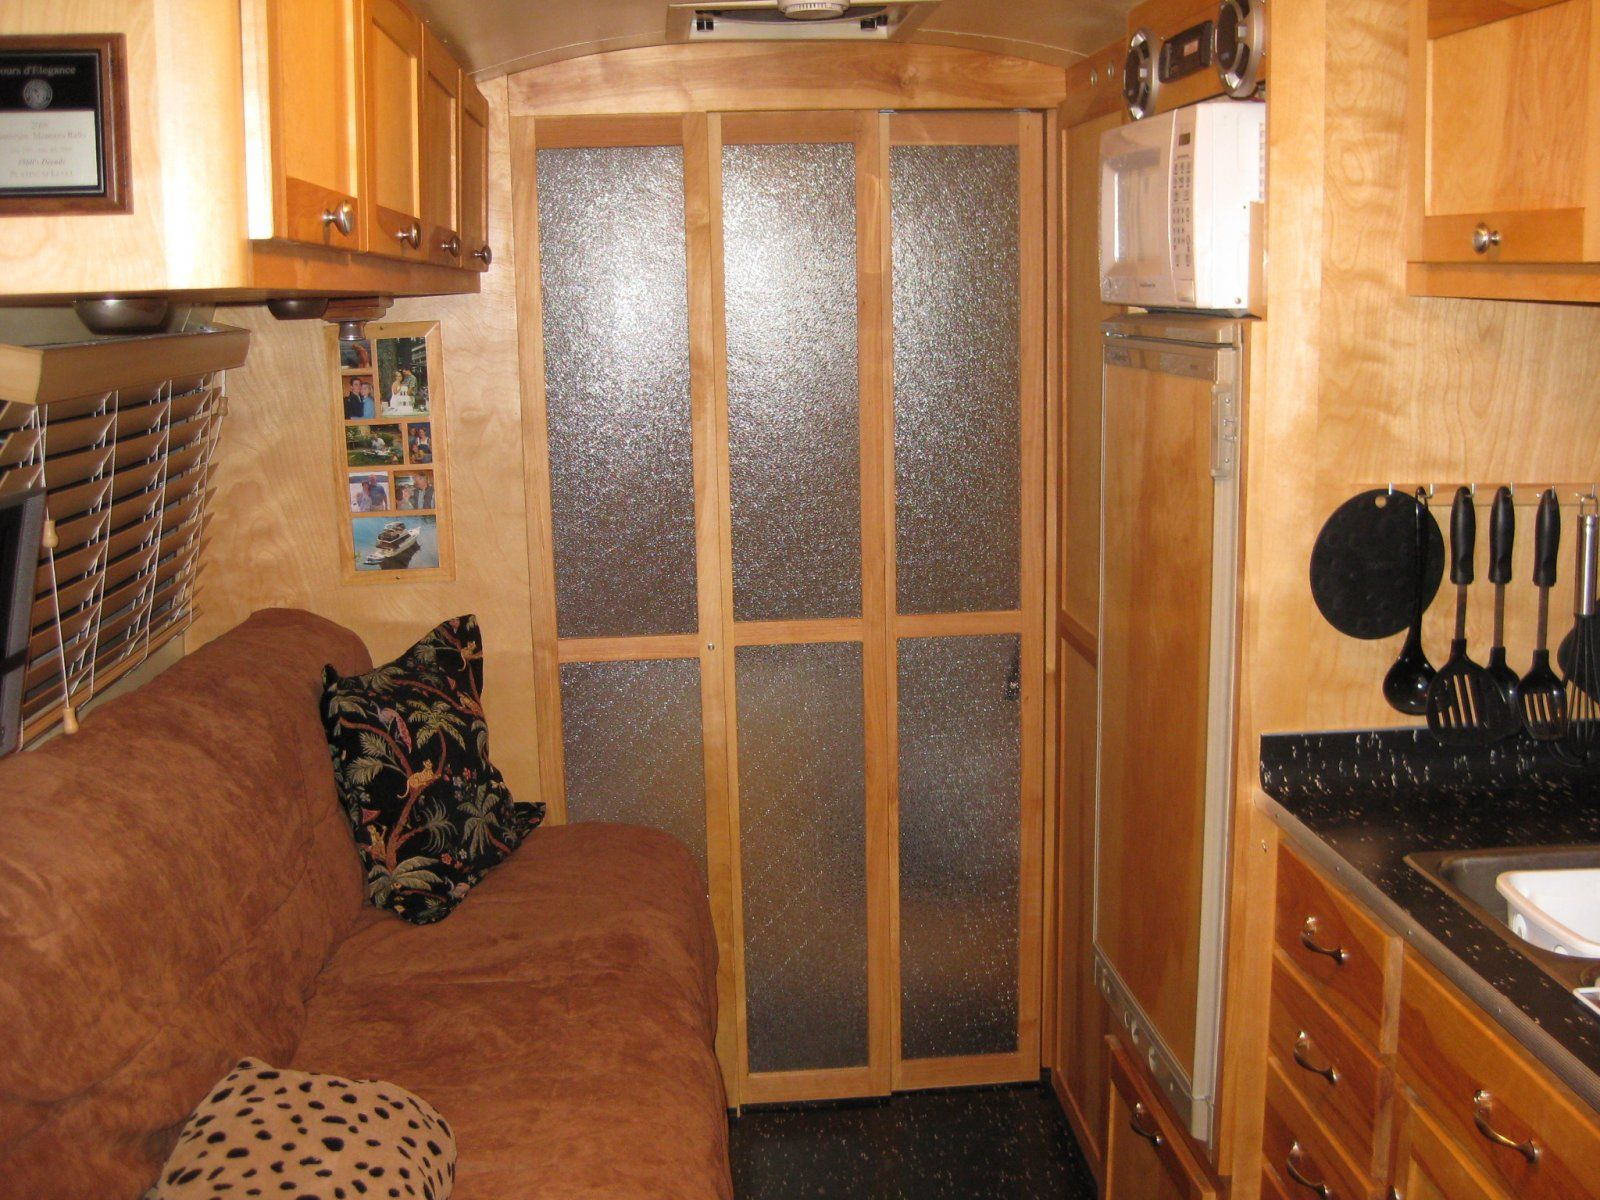 into accordion start separated amount an lemonade bedroom door is love of jonesmade new doors by i that adventures rv edited master in wall the storage slides